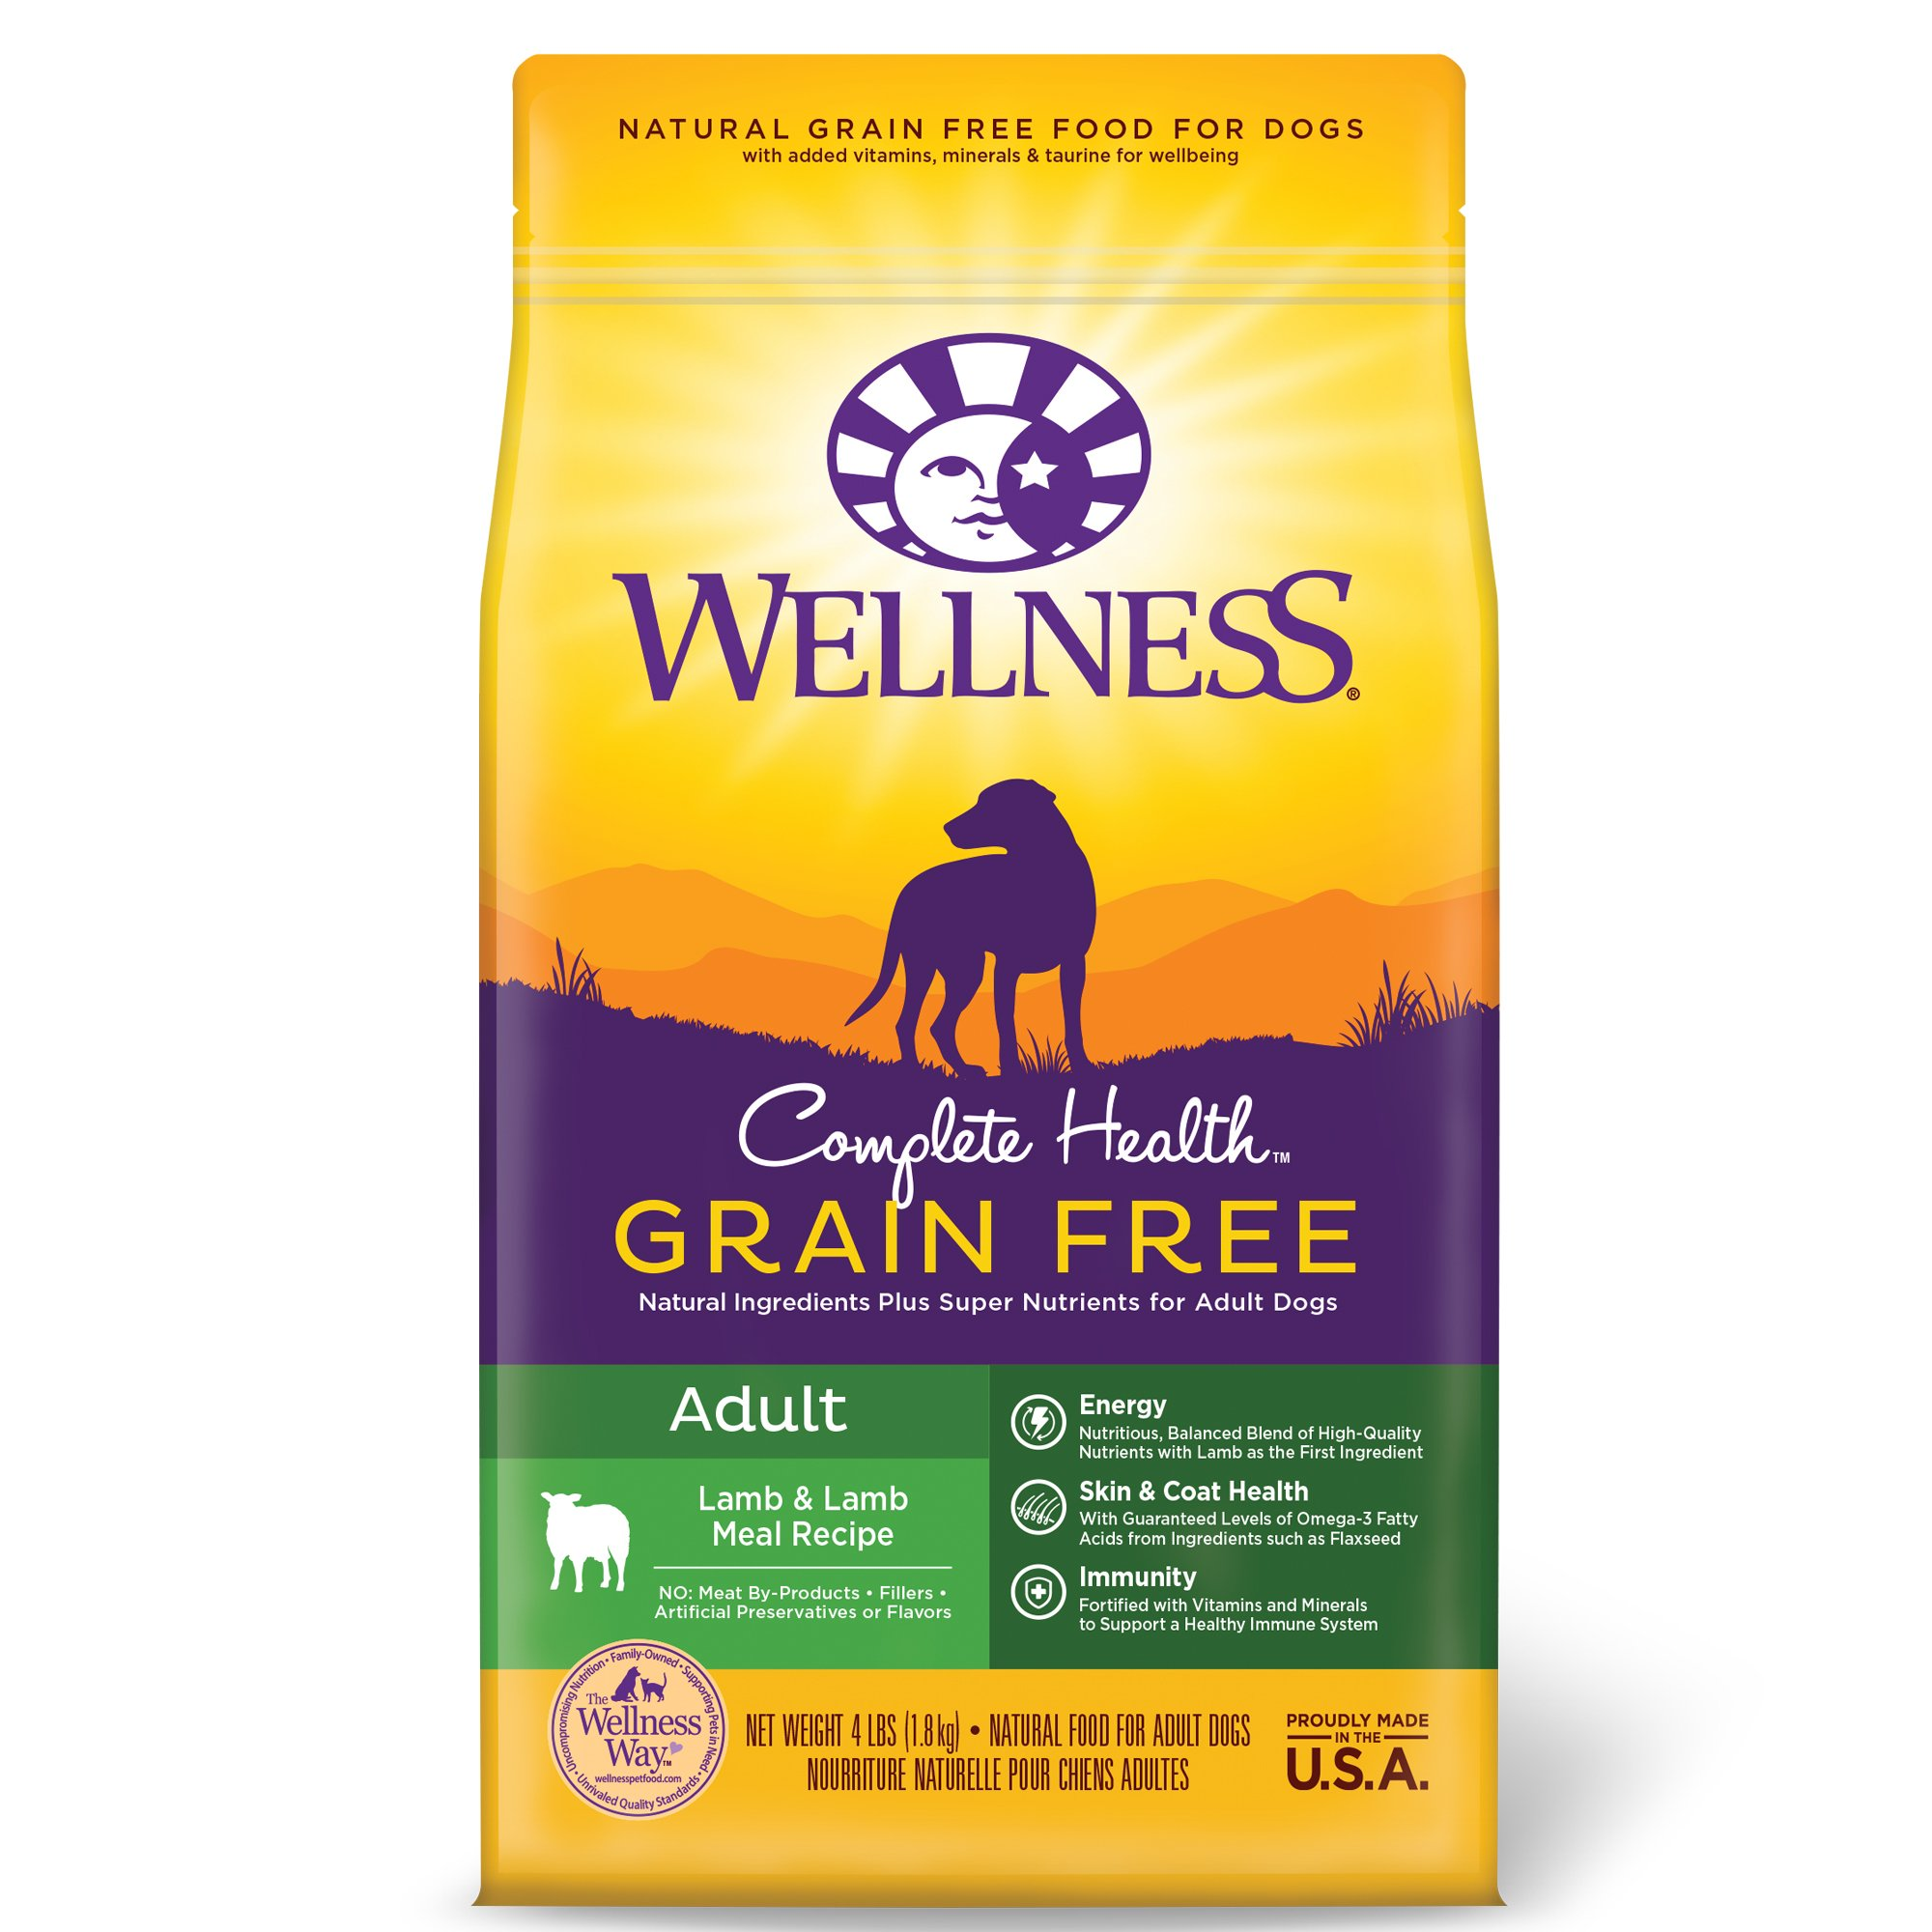 Wellness Complete Health Grain Free Adult Lamb Lamb Meal Recipe